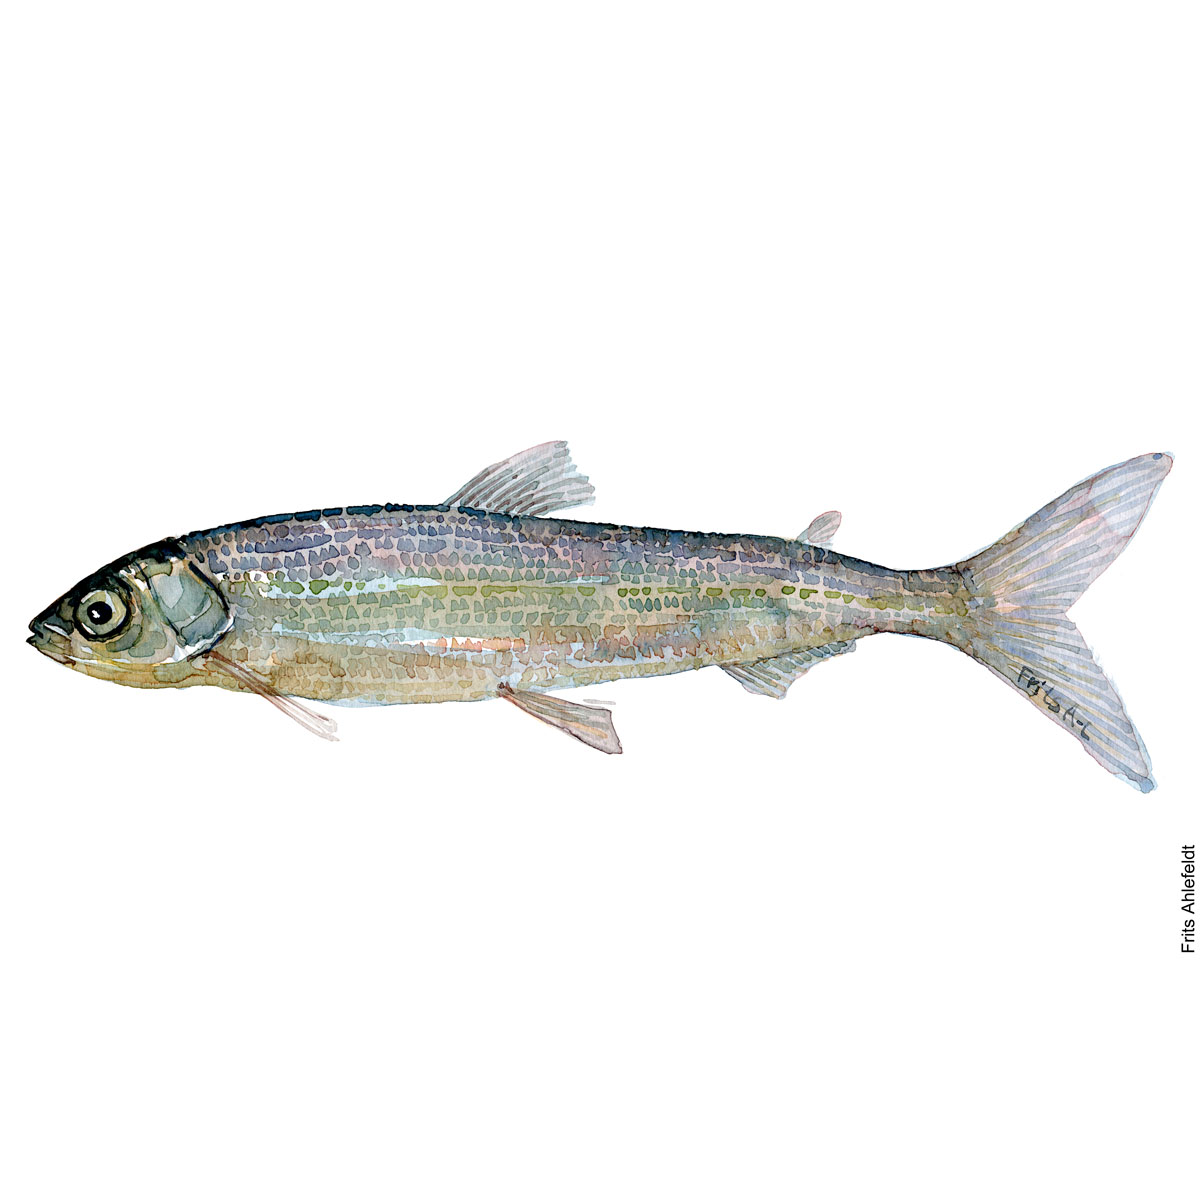 Vendace - cisco. Watercolour, Freshwater fish illustration by Frits Ahlefeldt